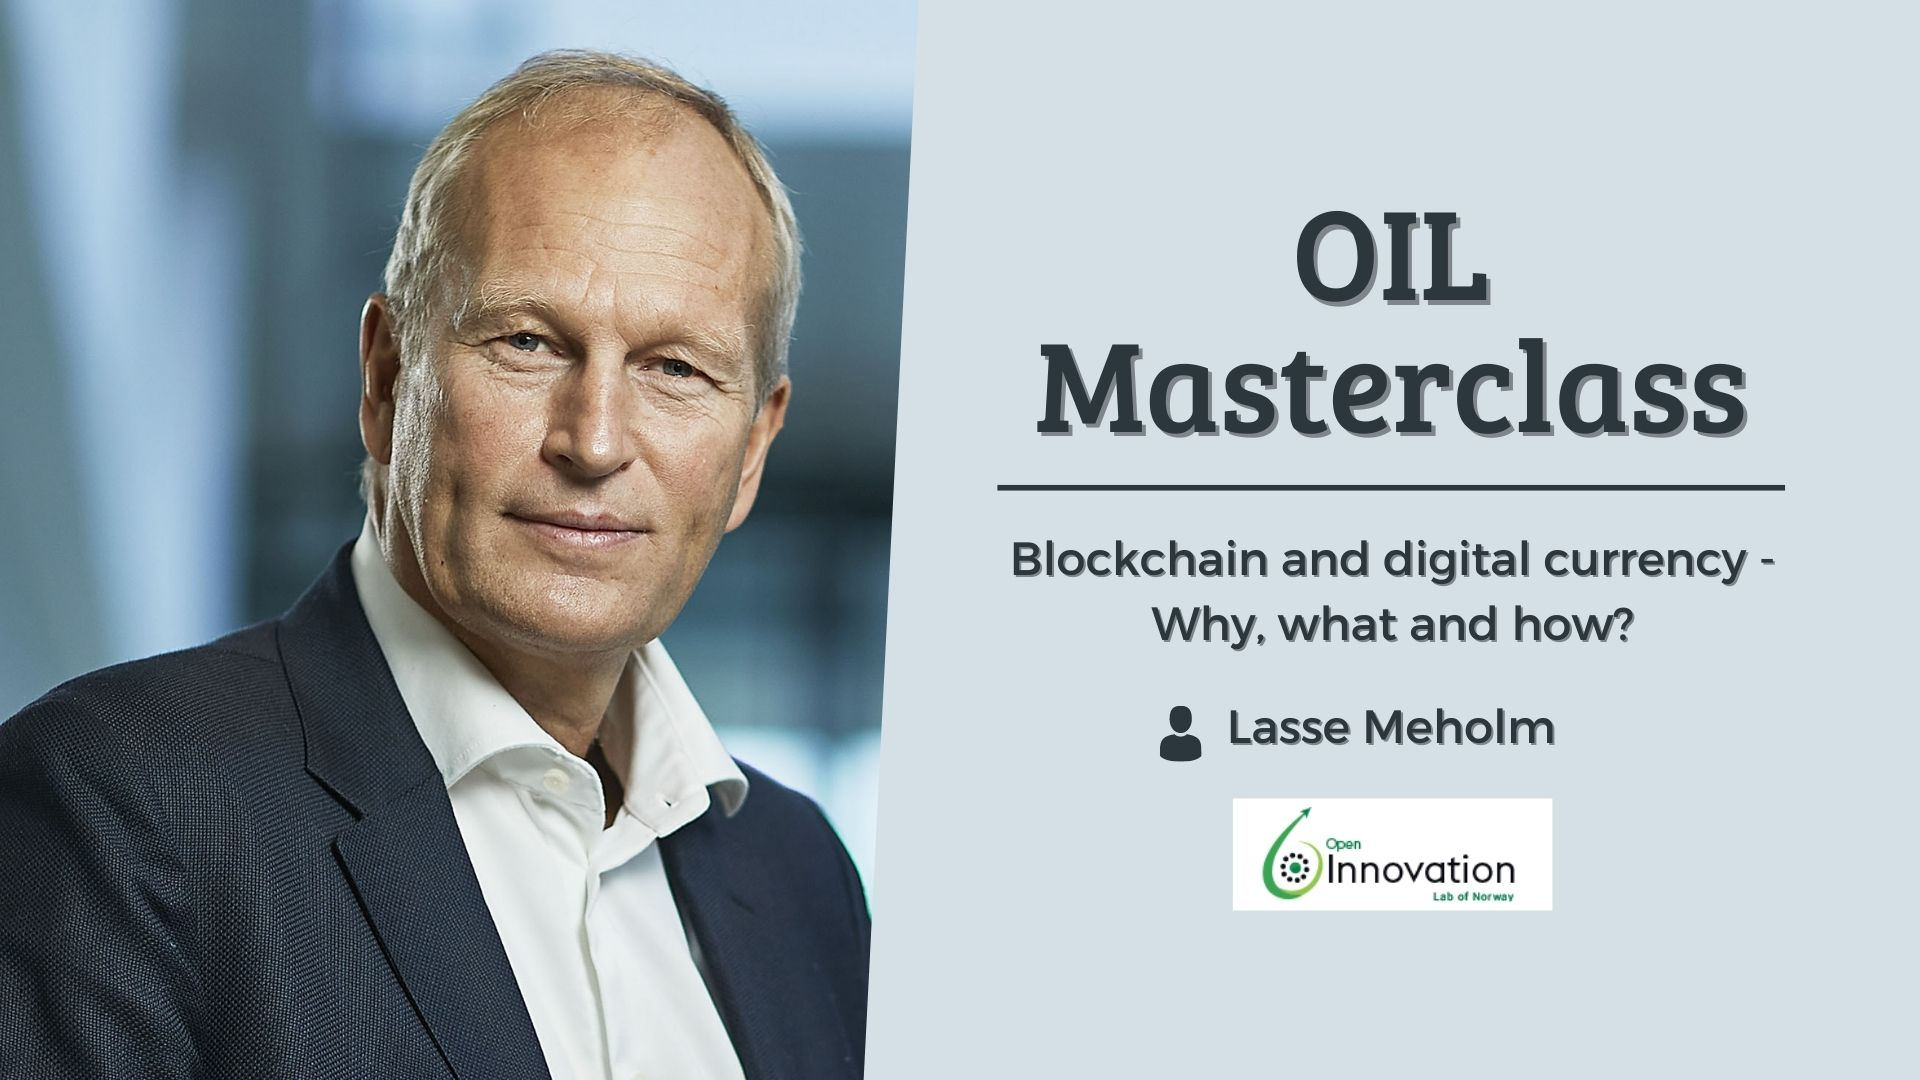 Masterclass med Lasse Meholm